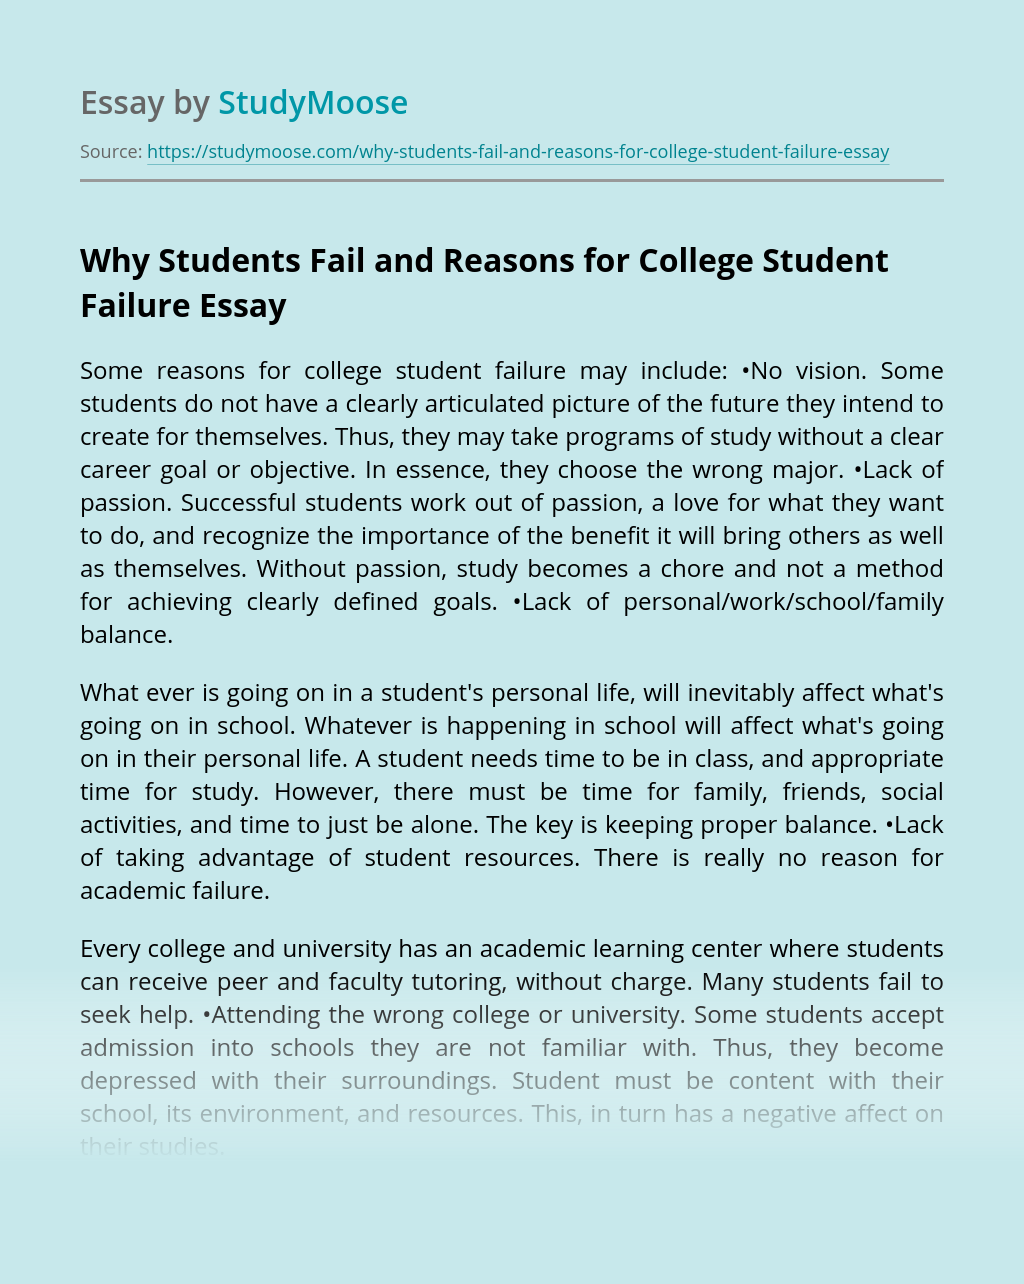 Why Students Fail and Reasons for College Student Failure